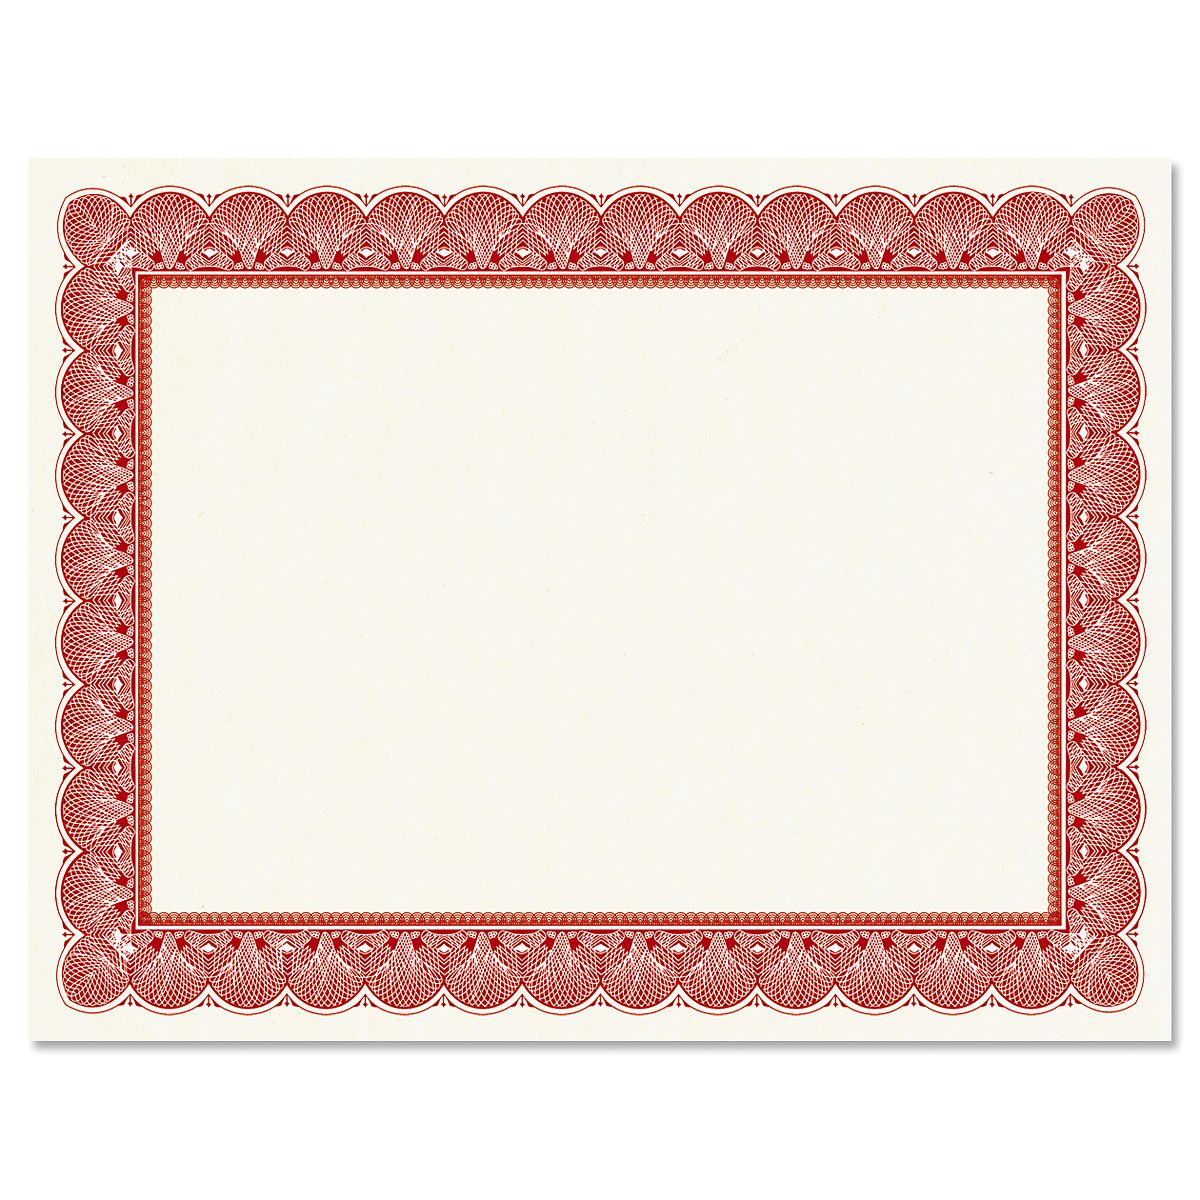 Elite Red Certificate on White Parchment